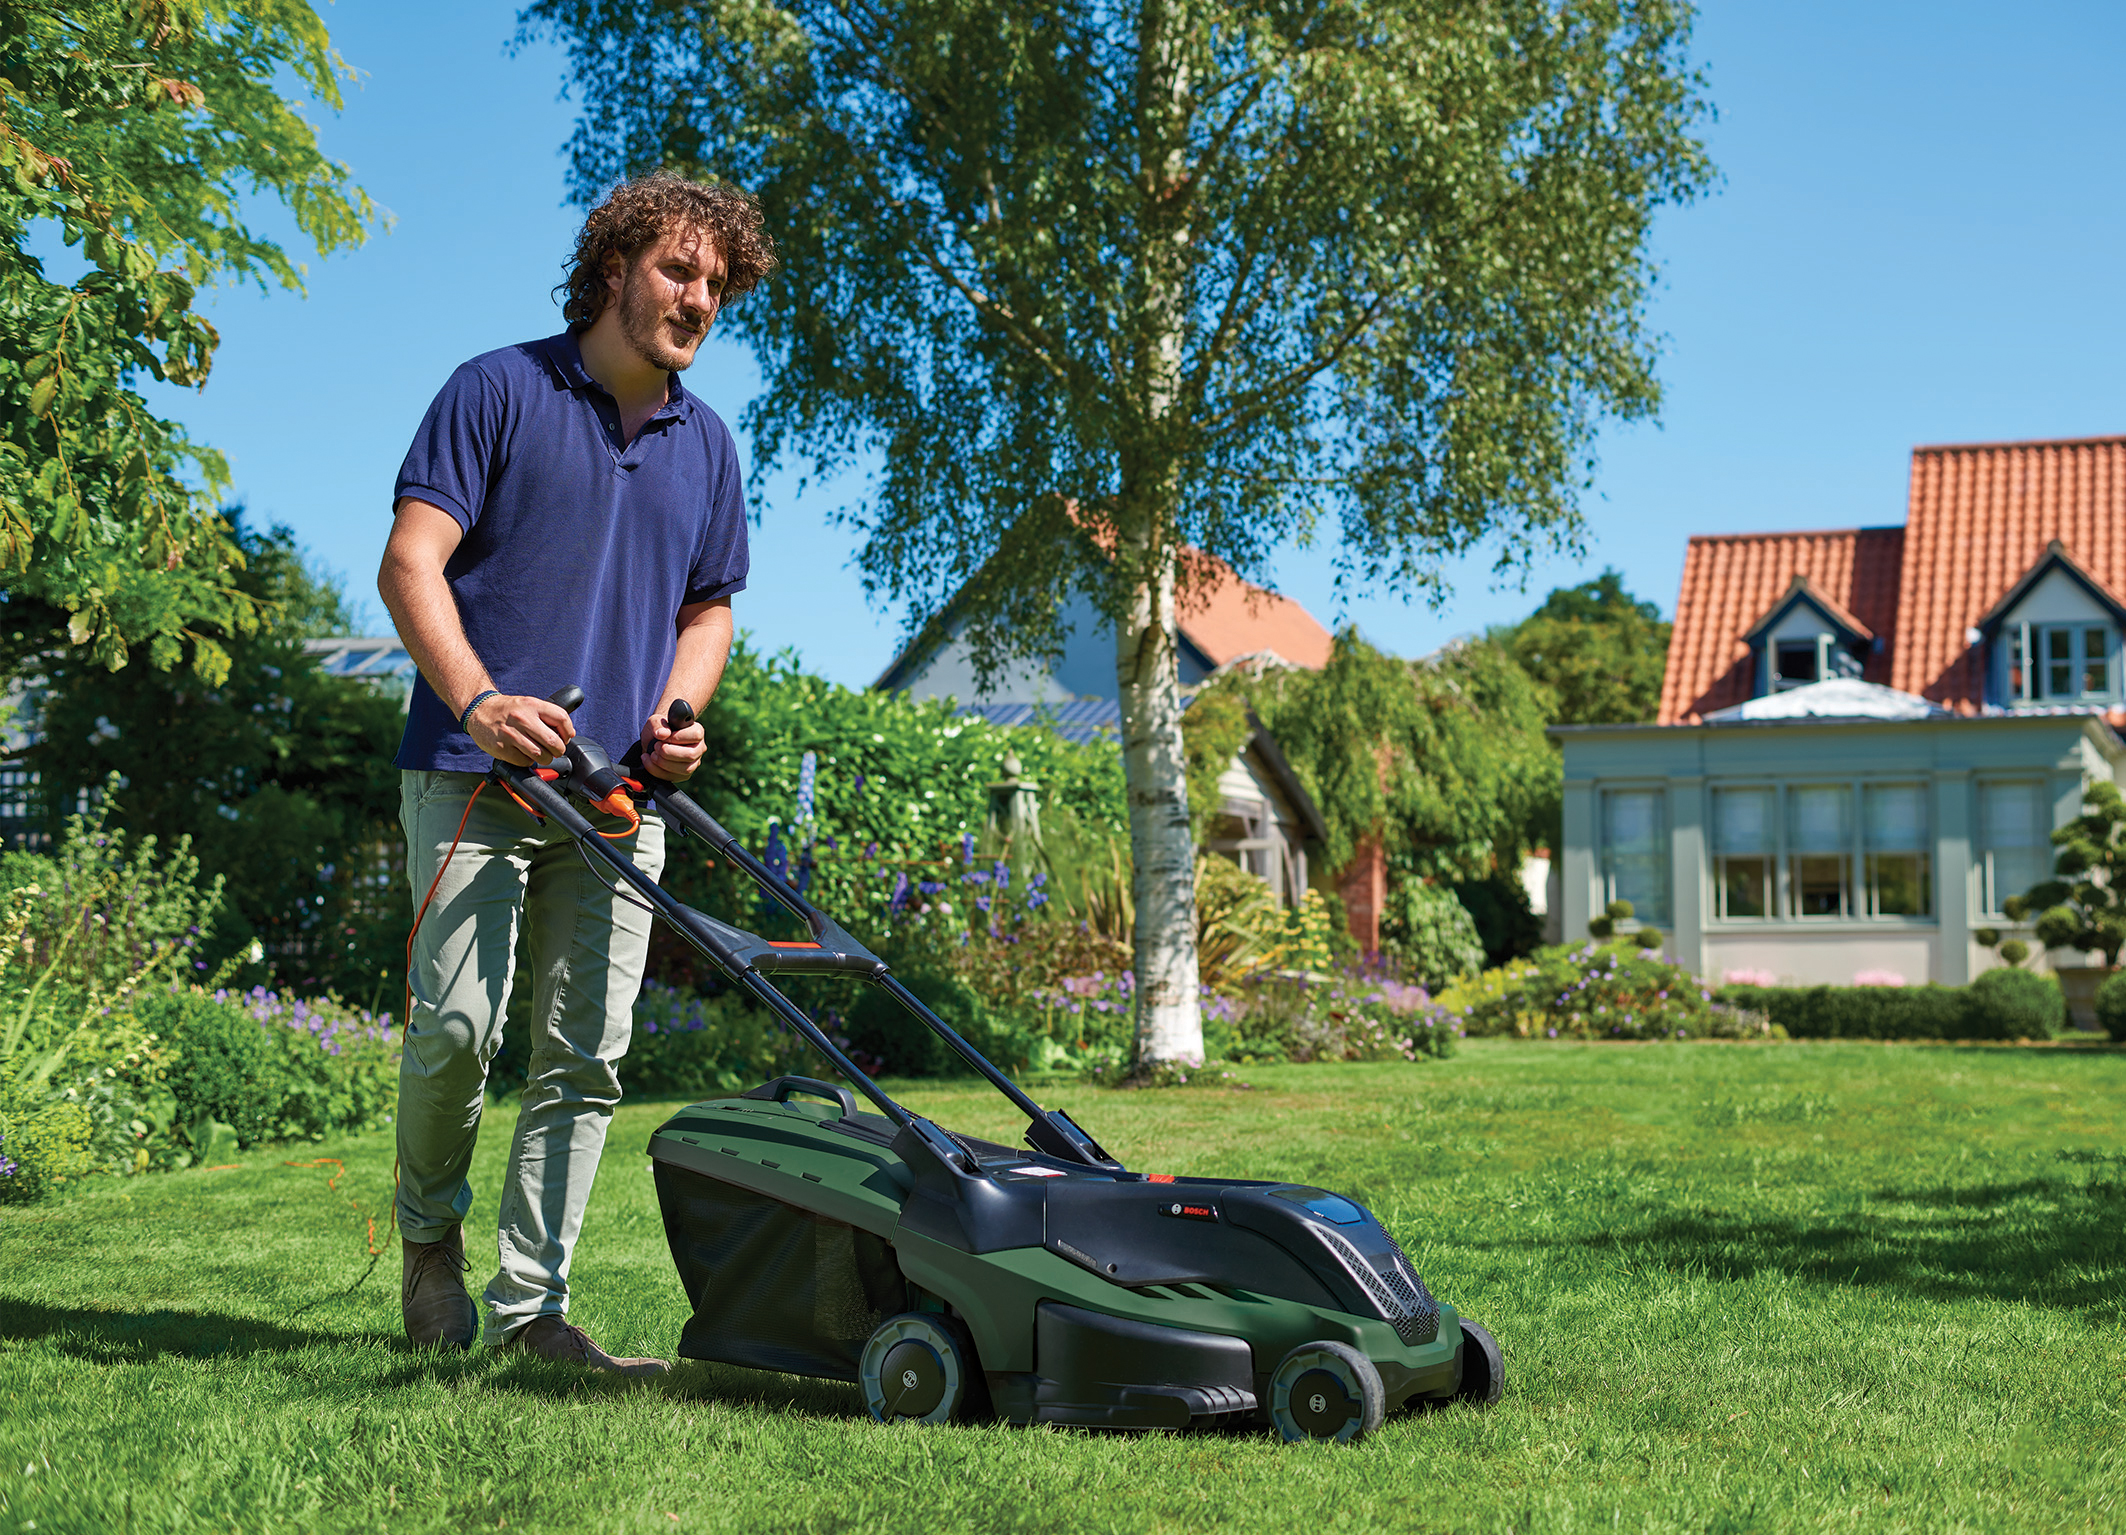 Stress-free lawn care with Bosch ProSilence: The new Rotak series from Bosch